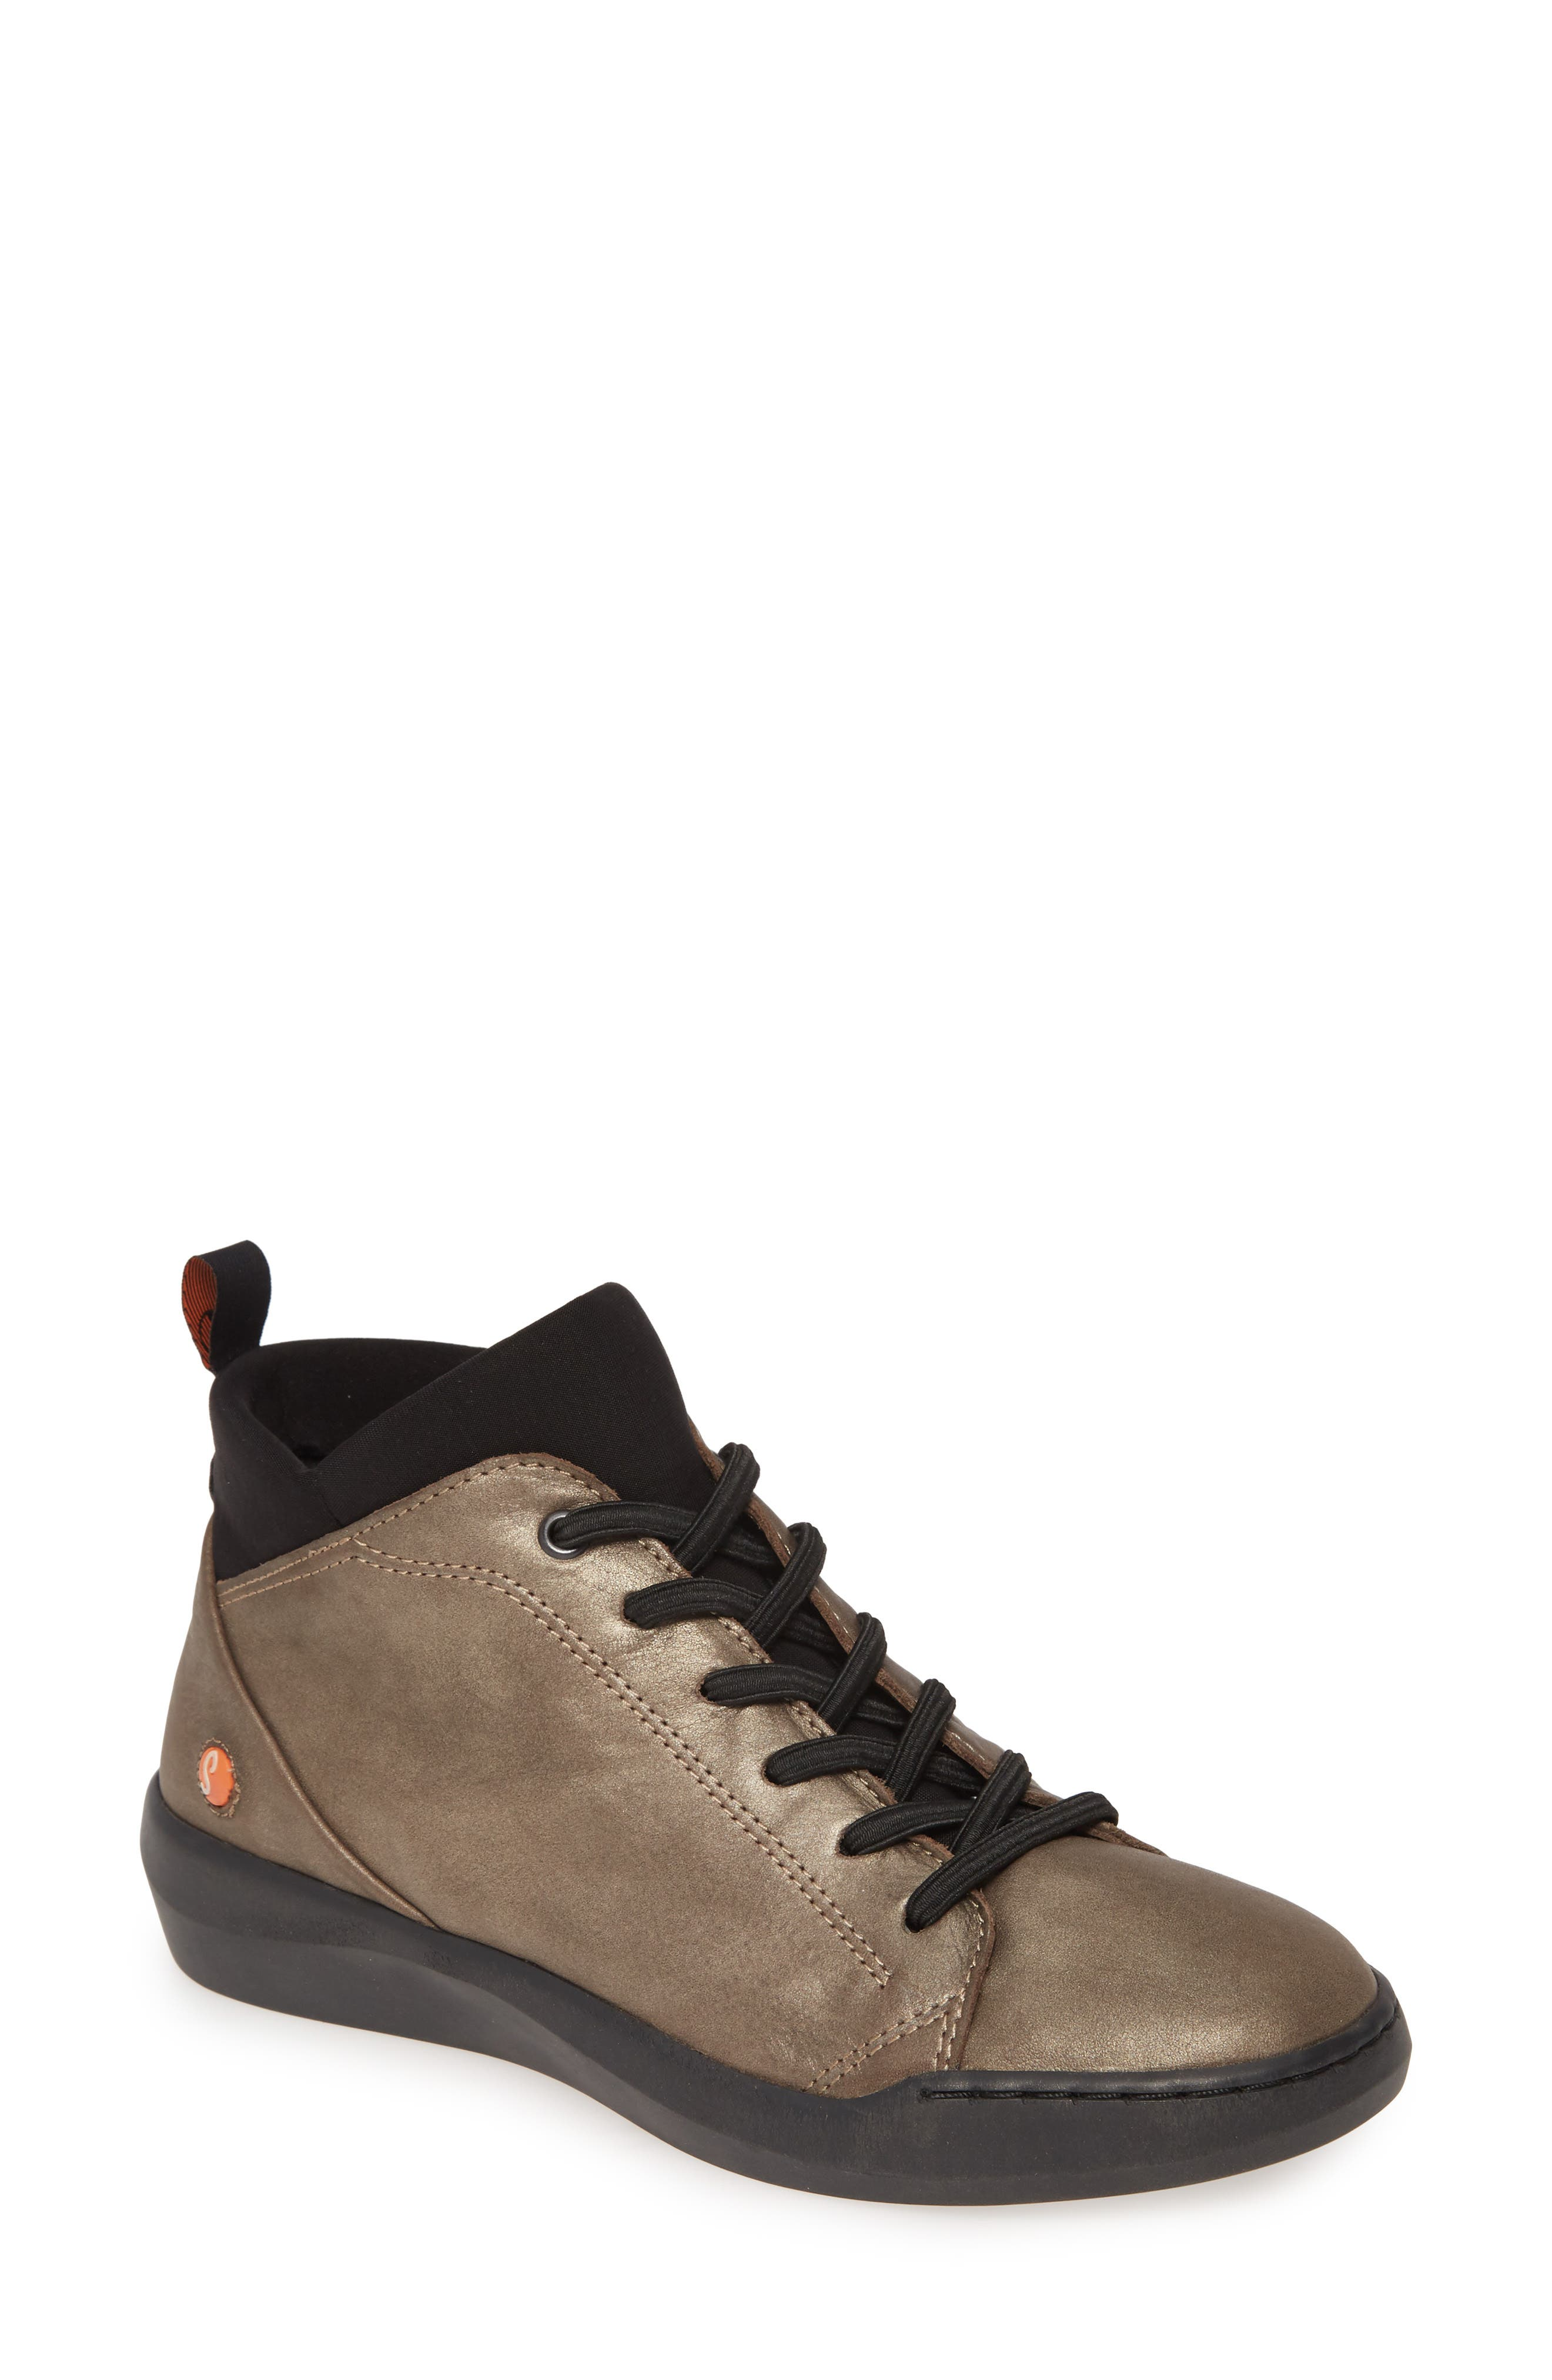 Softinos By Fly London Biel Sneaker - Grey